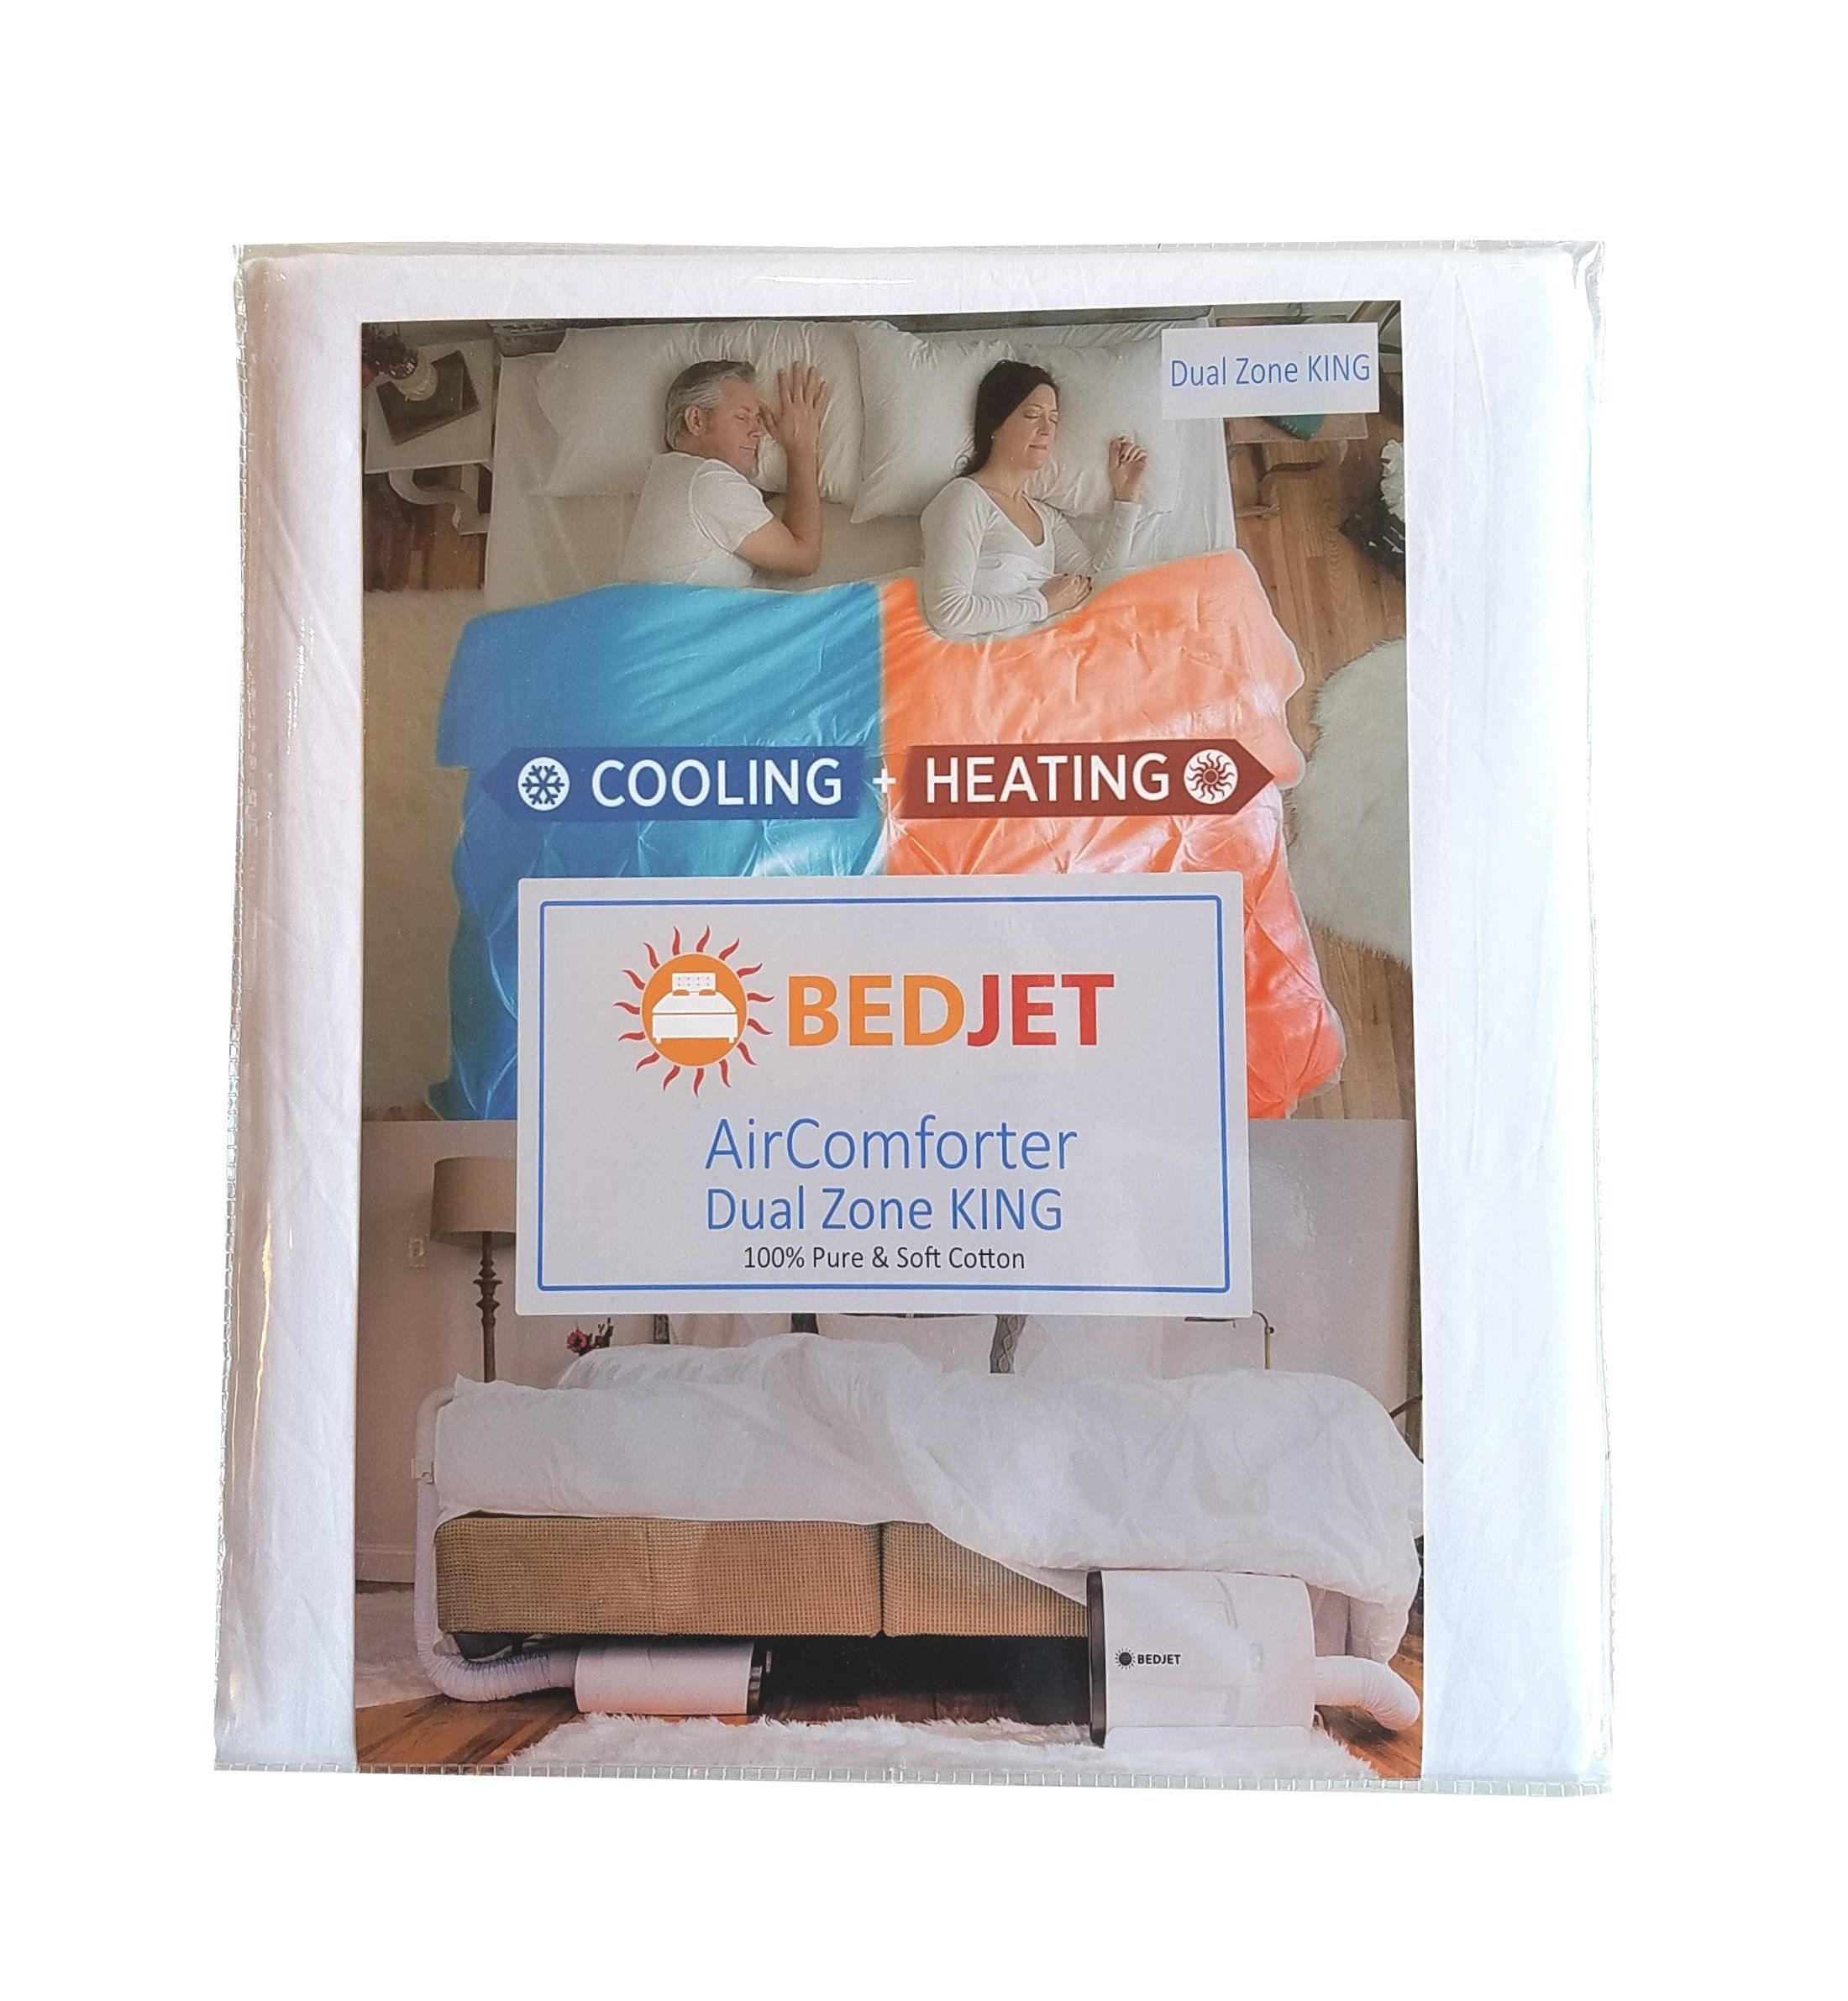 Bedjet Aircomforter Cooling And Heating Sheet Dual Zone King Not